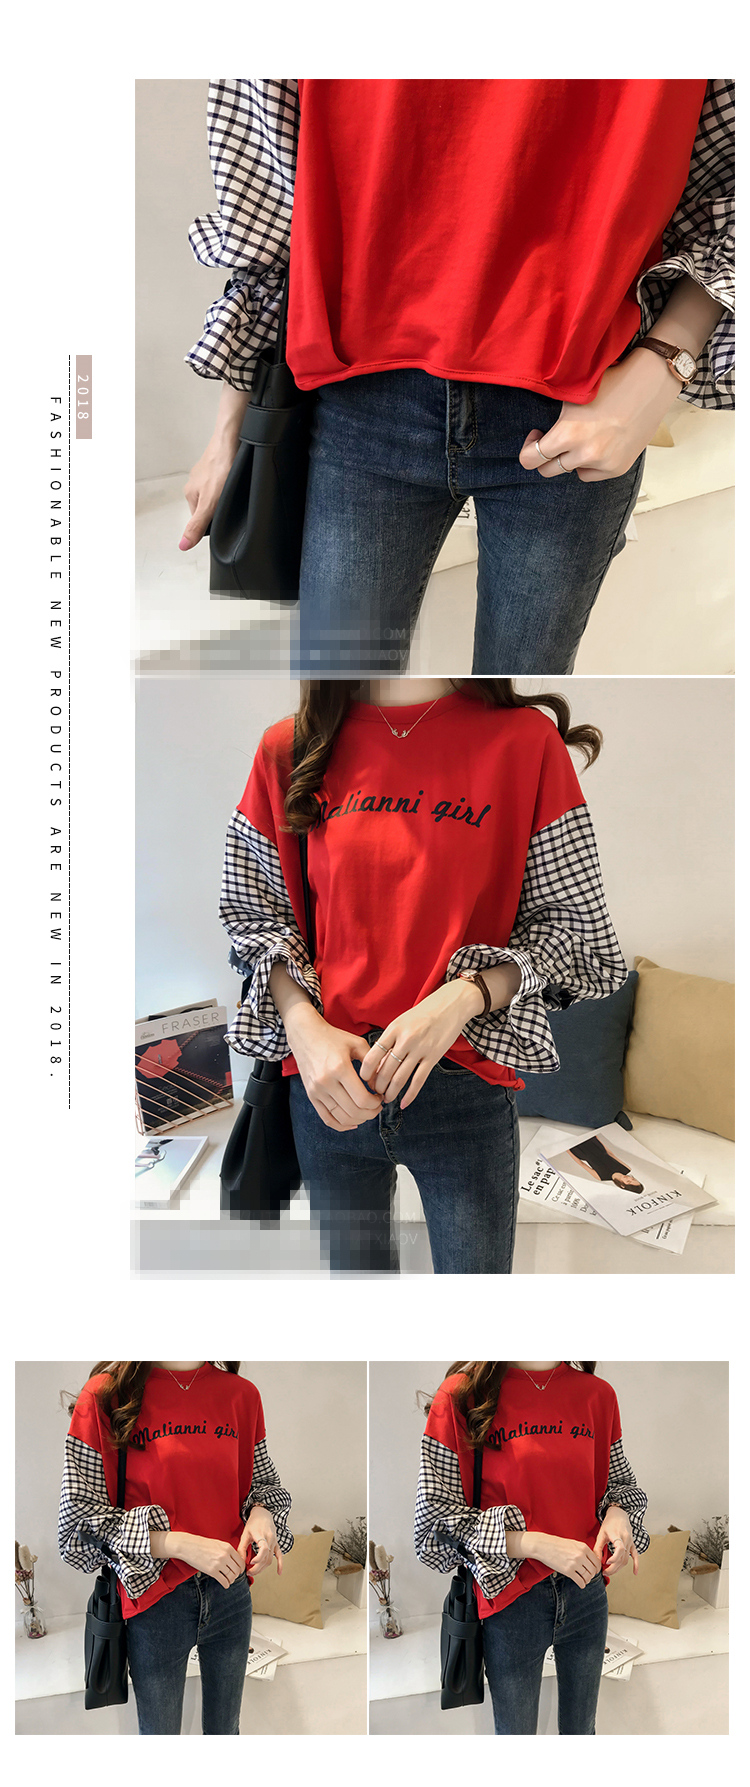 M-4xl Plus Size Cotton Casual T-shirts Women Plaid Patchwork Flare Sleeve O-neck Tshirts Harajuku Fake Two Piece Loose Tees Tops 12